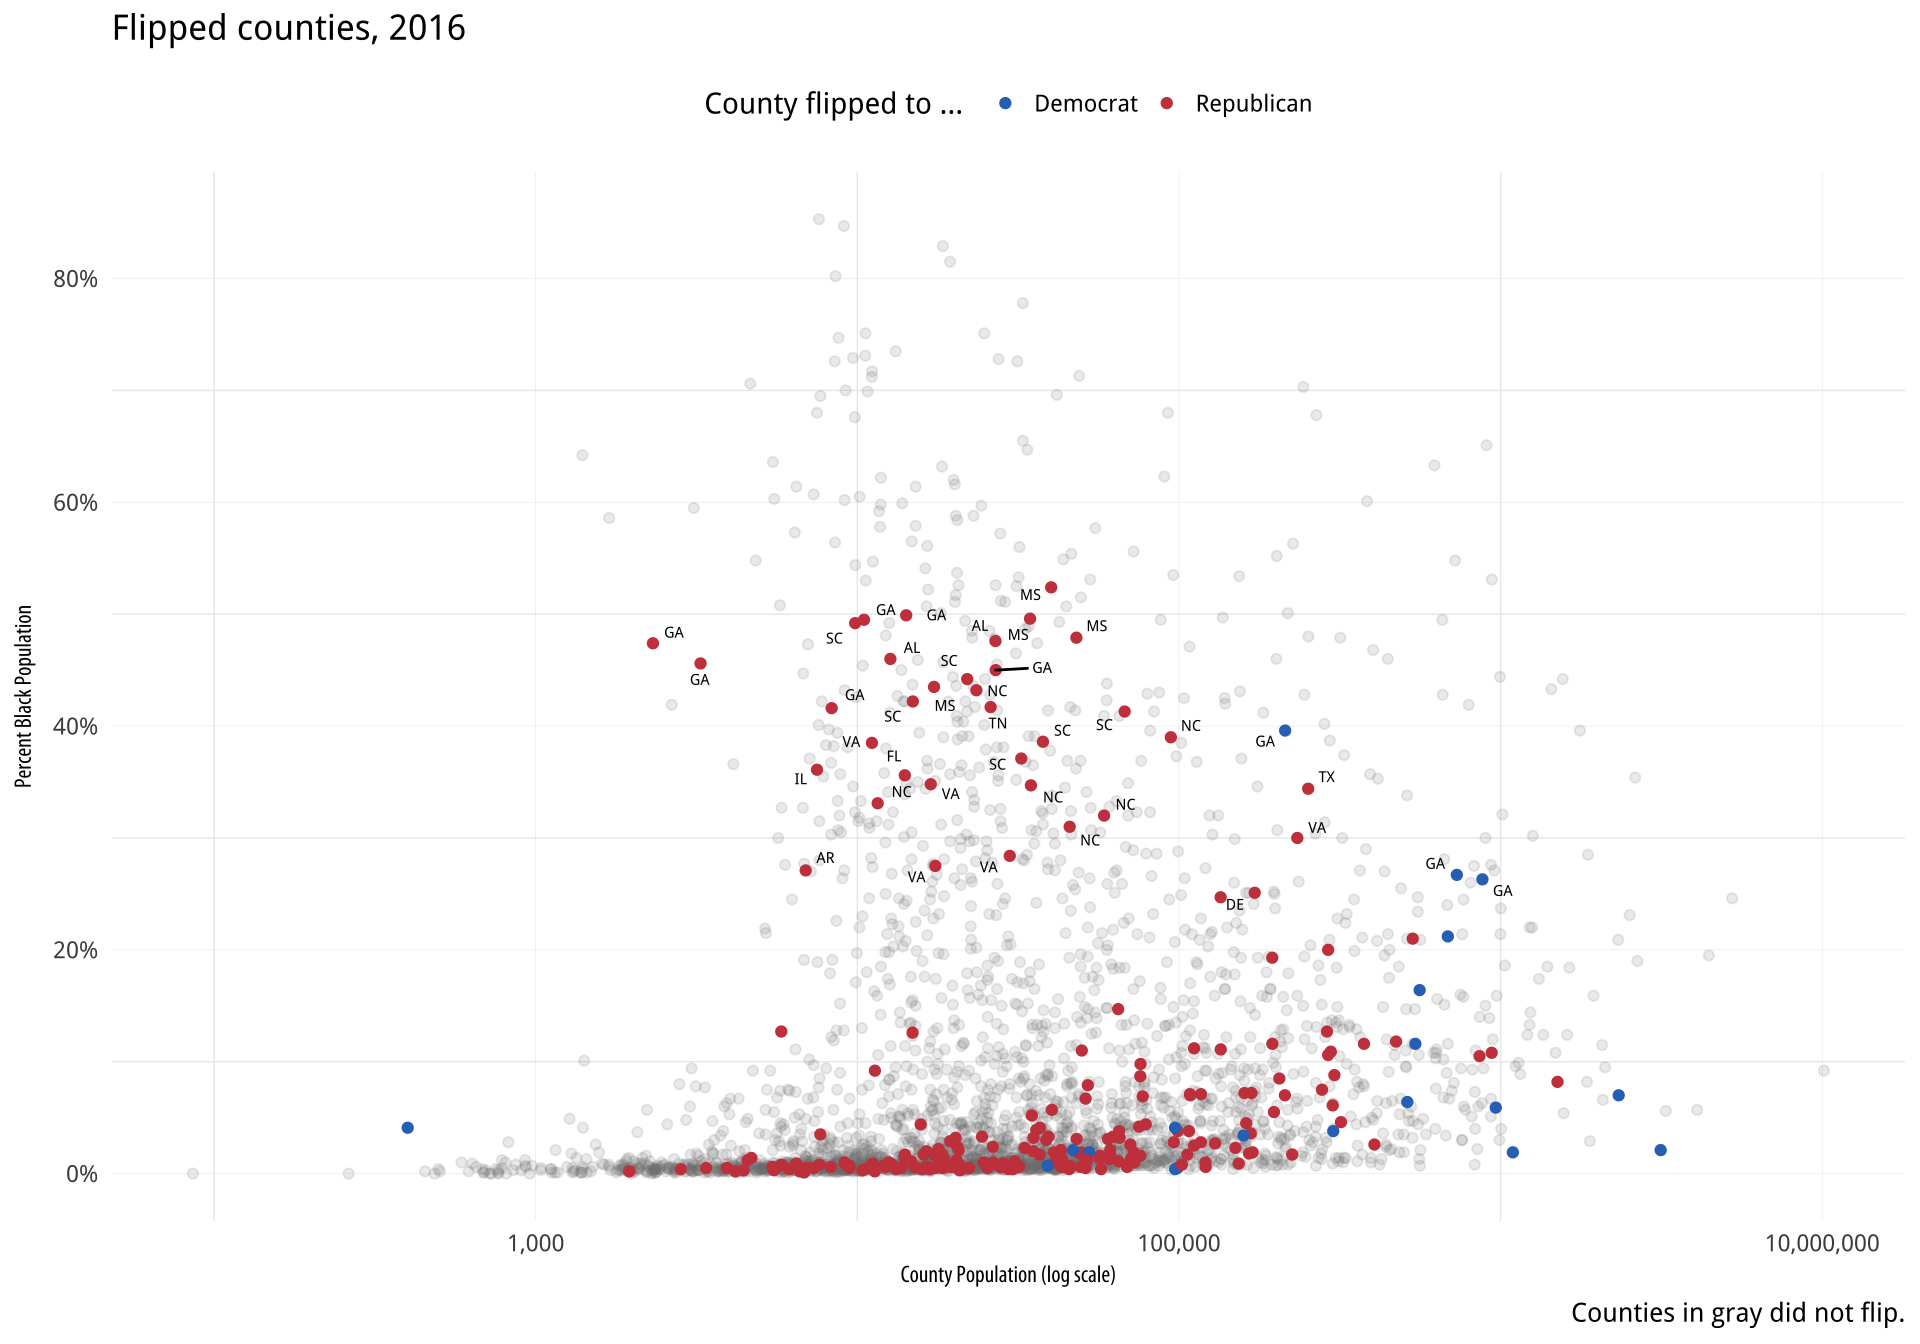 County-level election data from 2016.